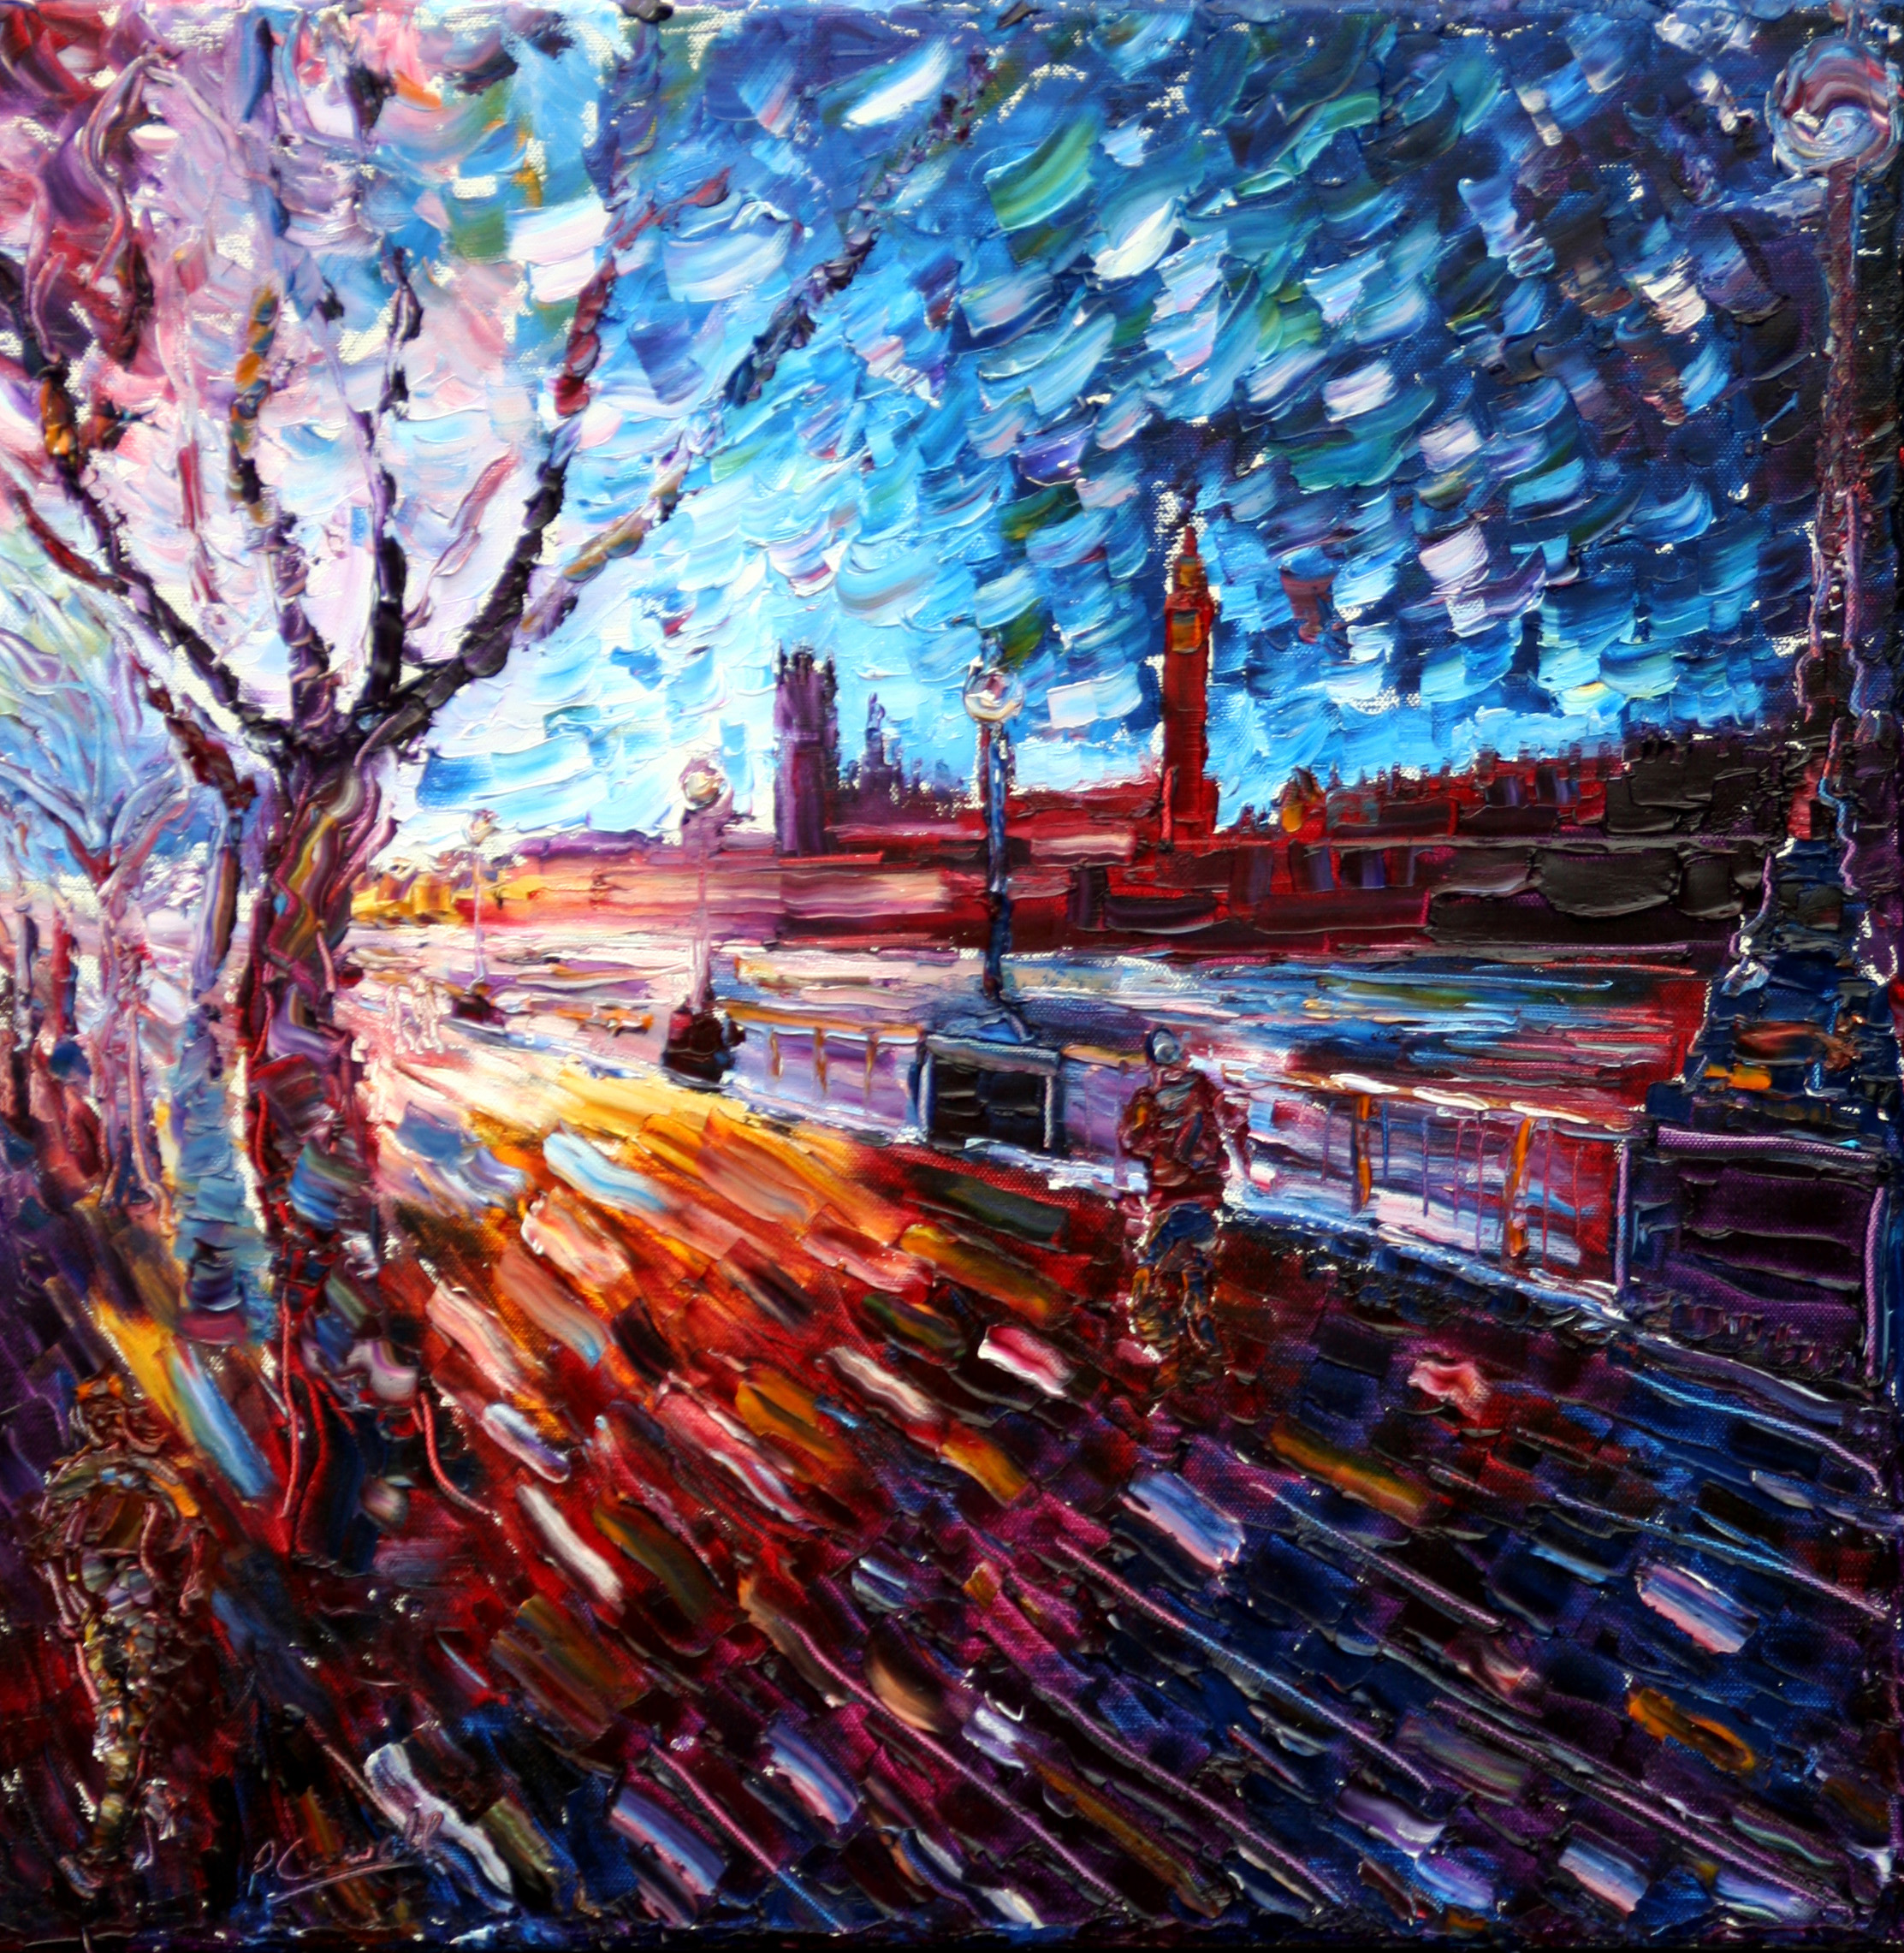 London Oil Painting For Sale Of Westminster Bridgebig Ben And